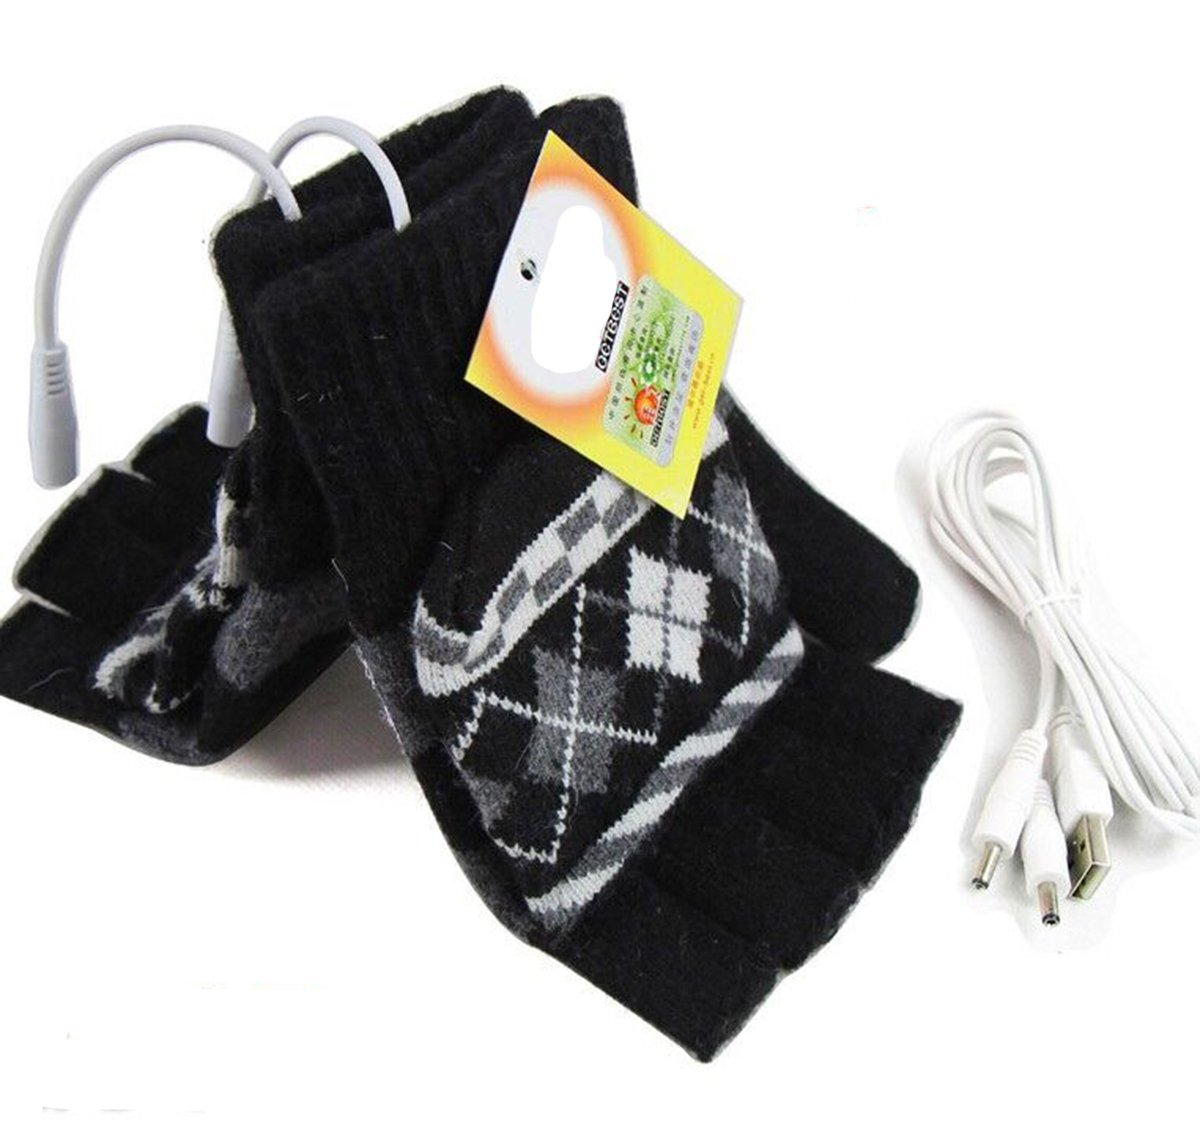 SOONHUA Laptop Rechargeable USB Heated Knitting Wool Hand Gloves Half Finger for Winter Keep Warm Safety (Black)